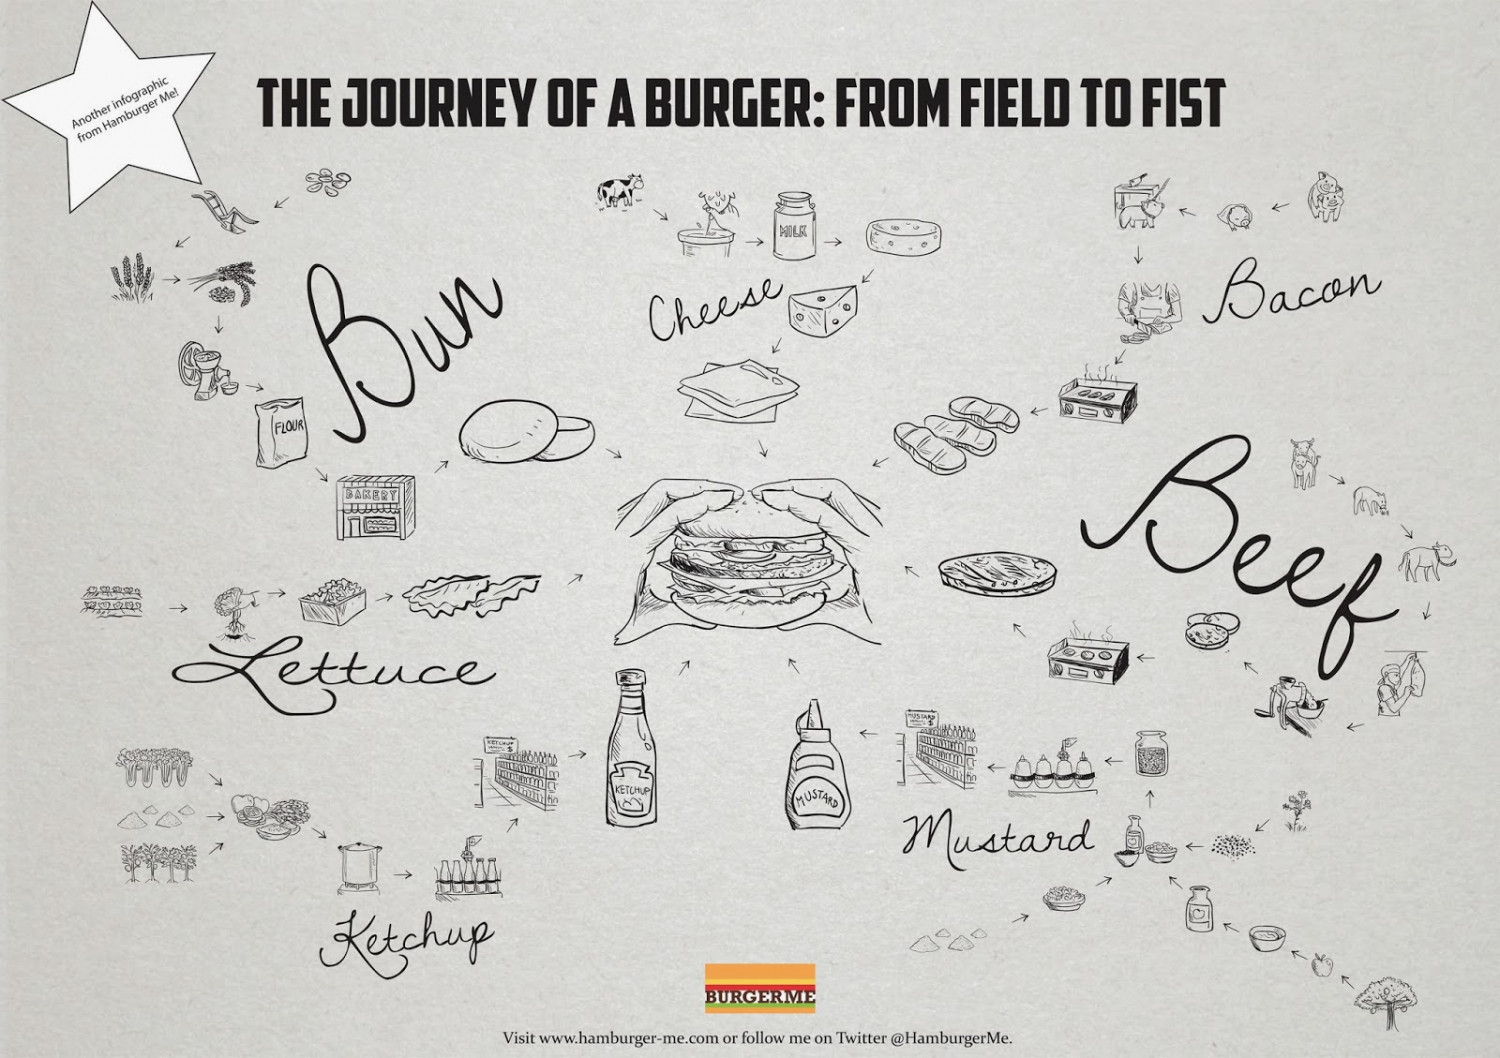 Journey of a burger: From field to fist Infographic